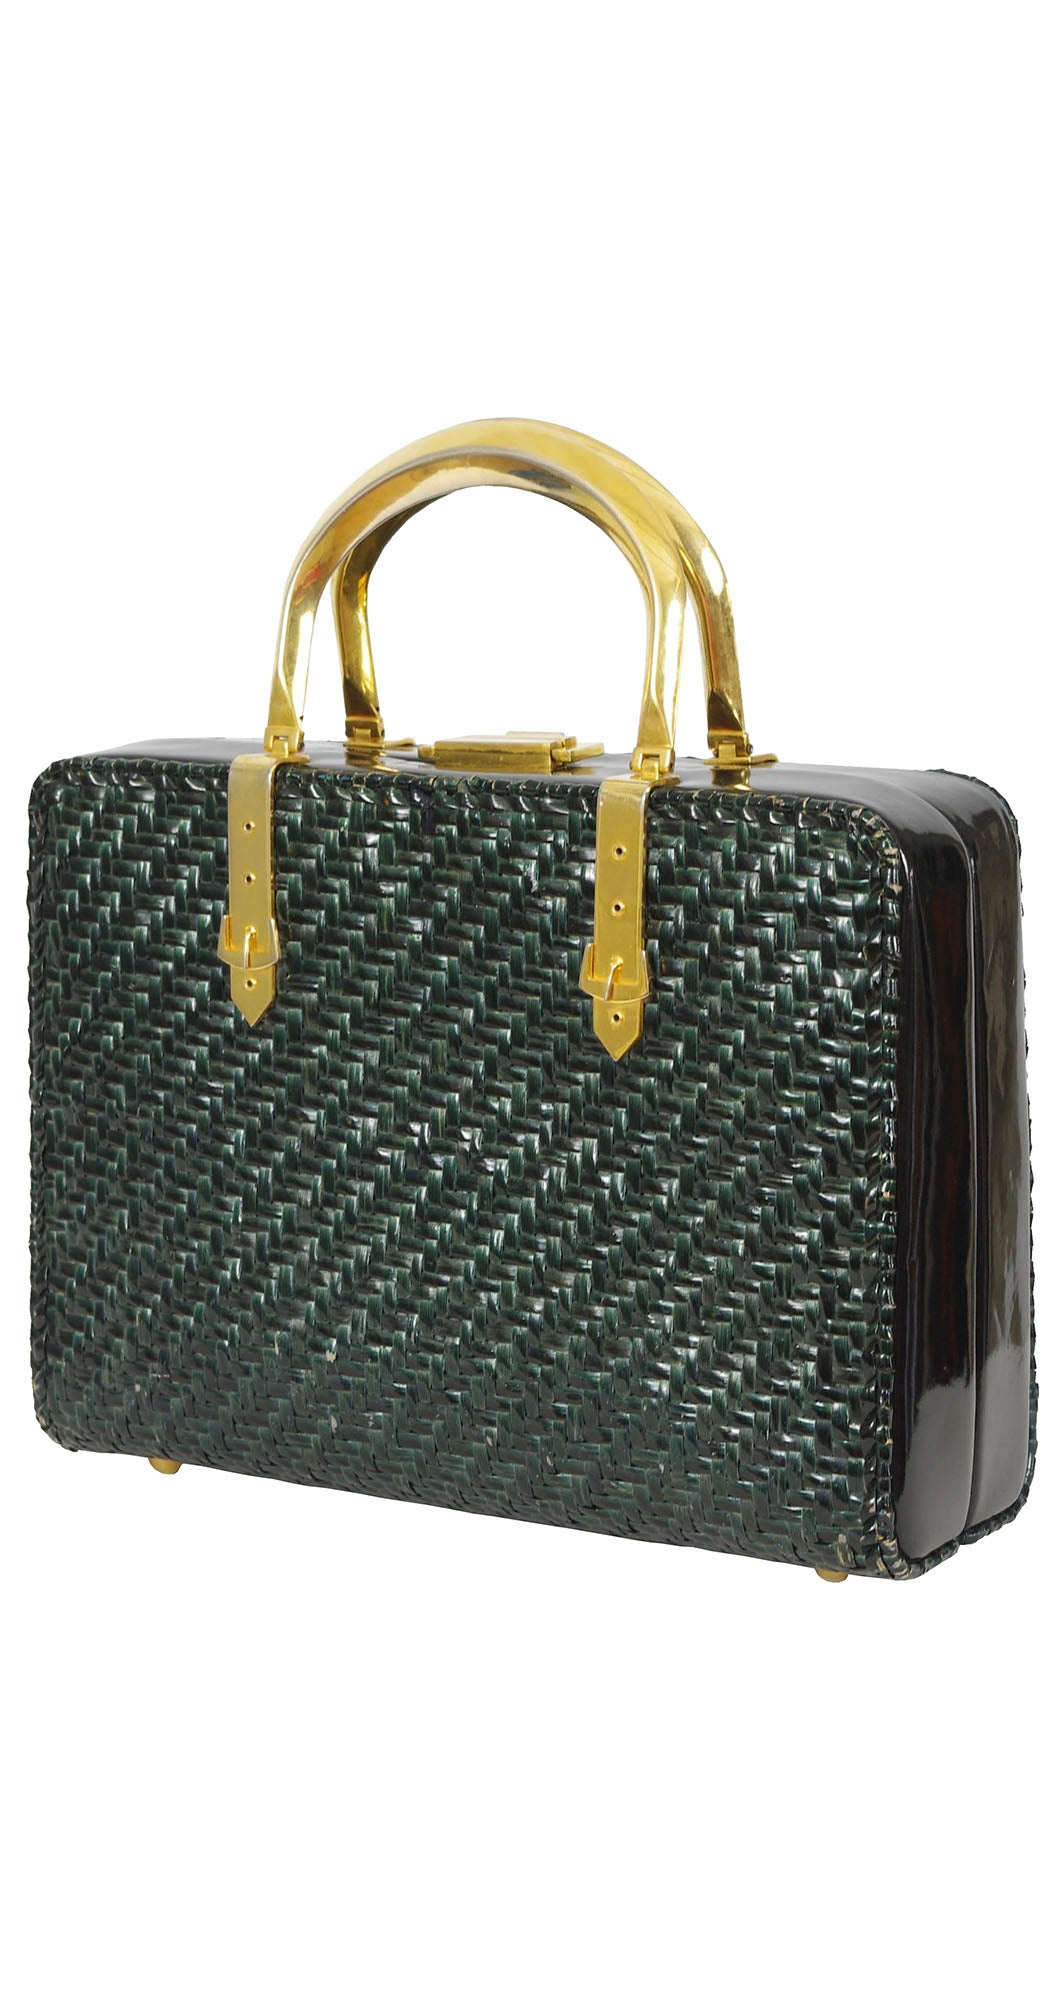 1960s Green Wicker Buckle Box Handbag